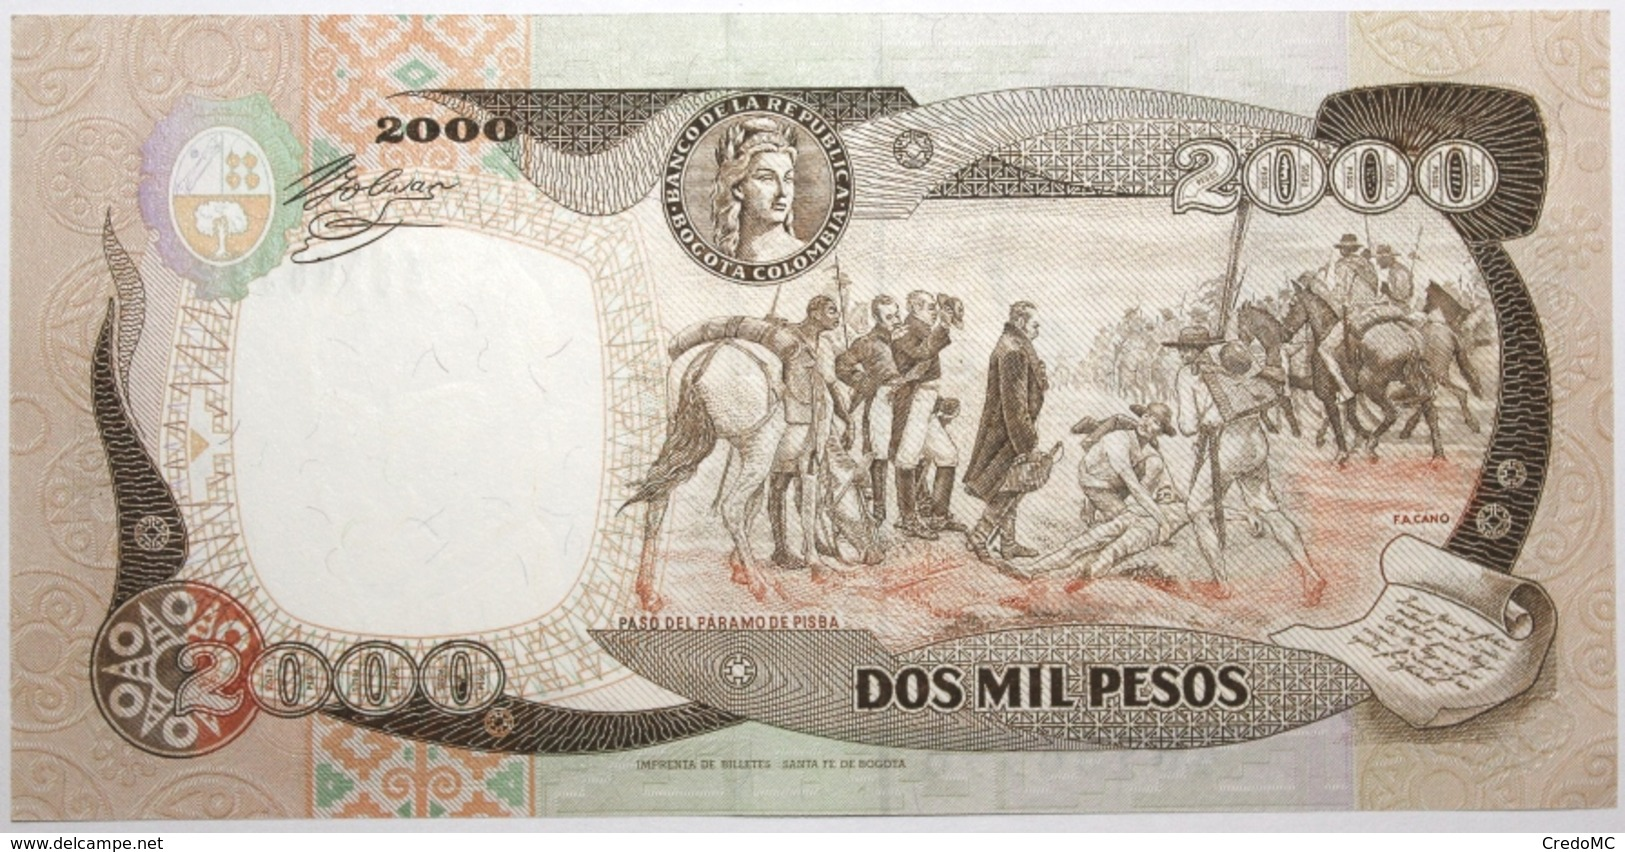 Colombie - 2000 Pesos Oro - 1993 - PICK 439a - NEUF - Colombia